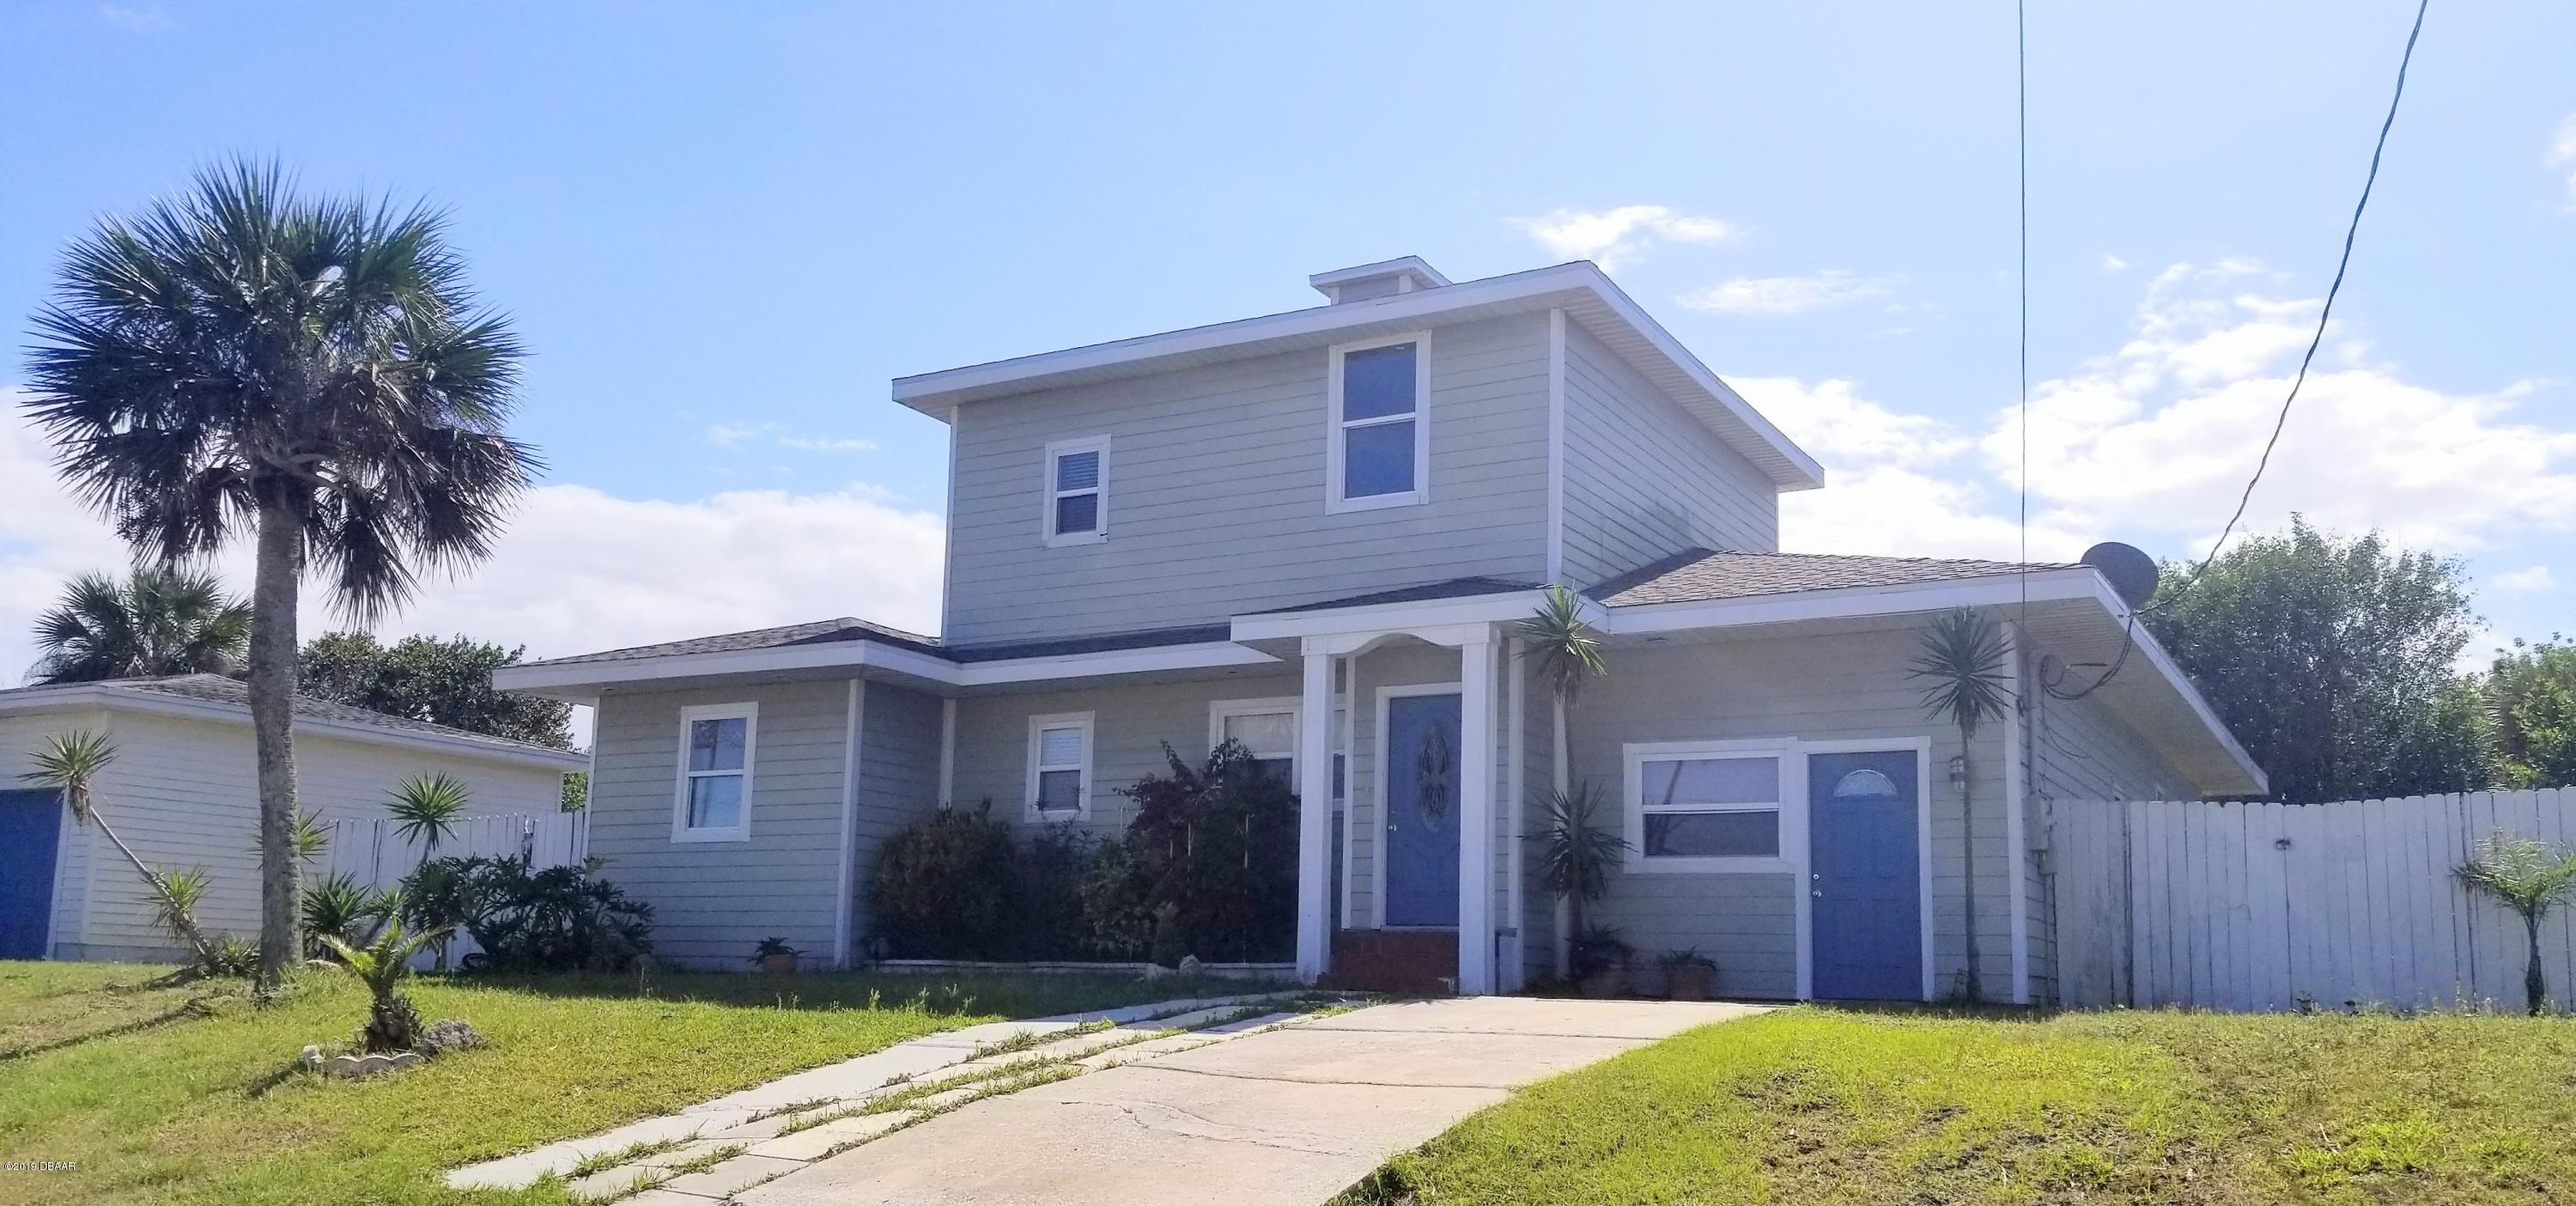 106 Claire Terrace, Daytona Beach Shores, Florida